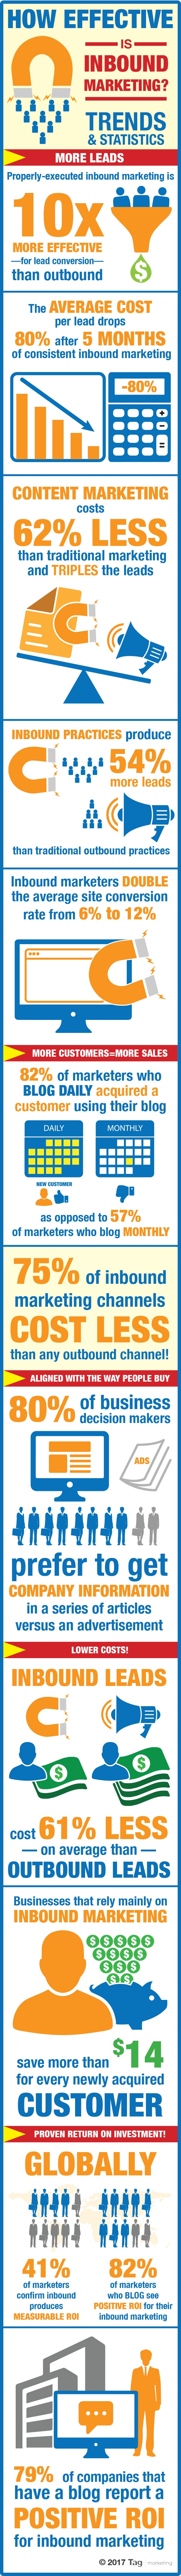 Proof Inbound Marketing WINS vs. Outbound Marketing [Infographic]